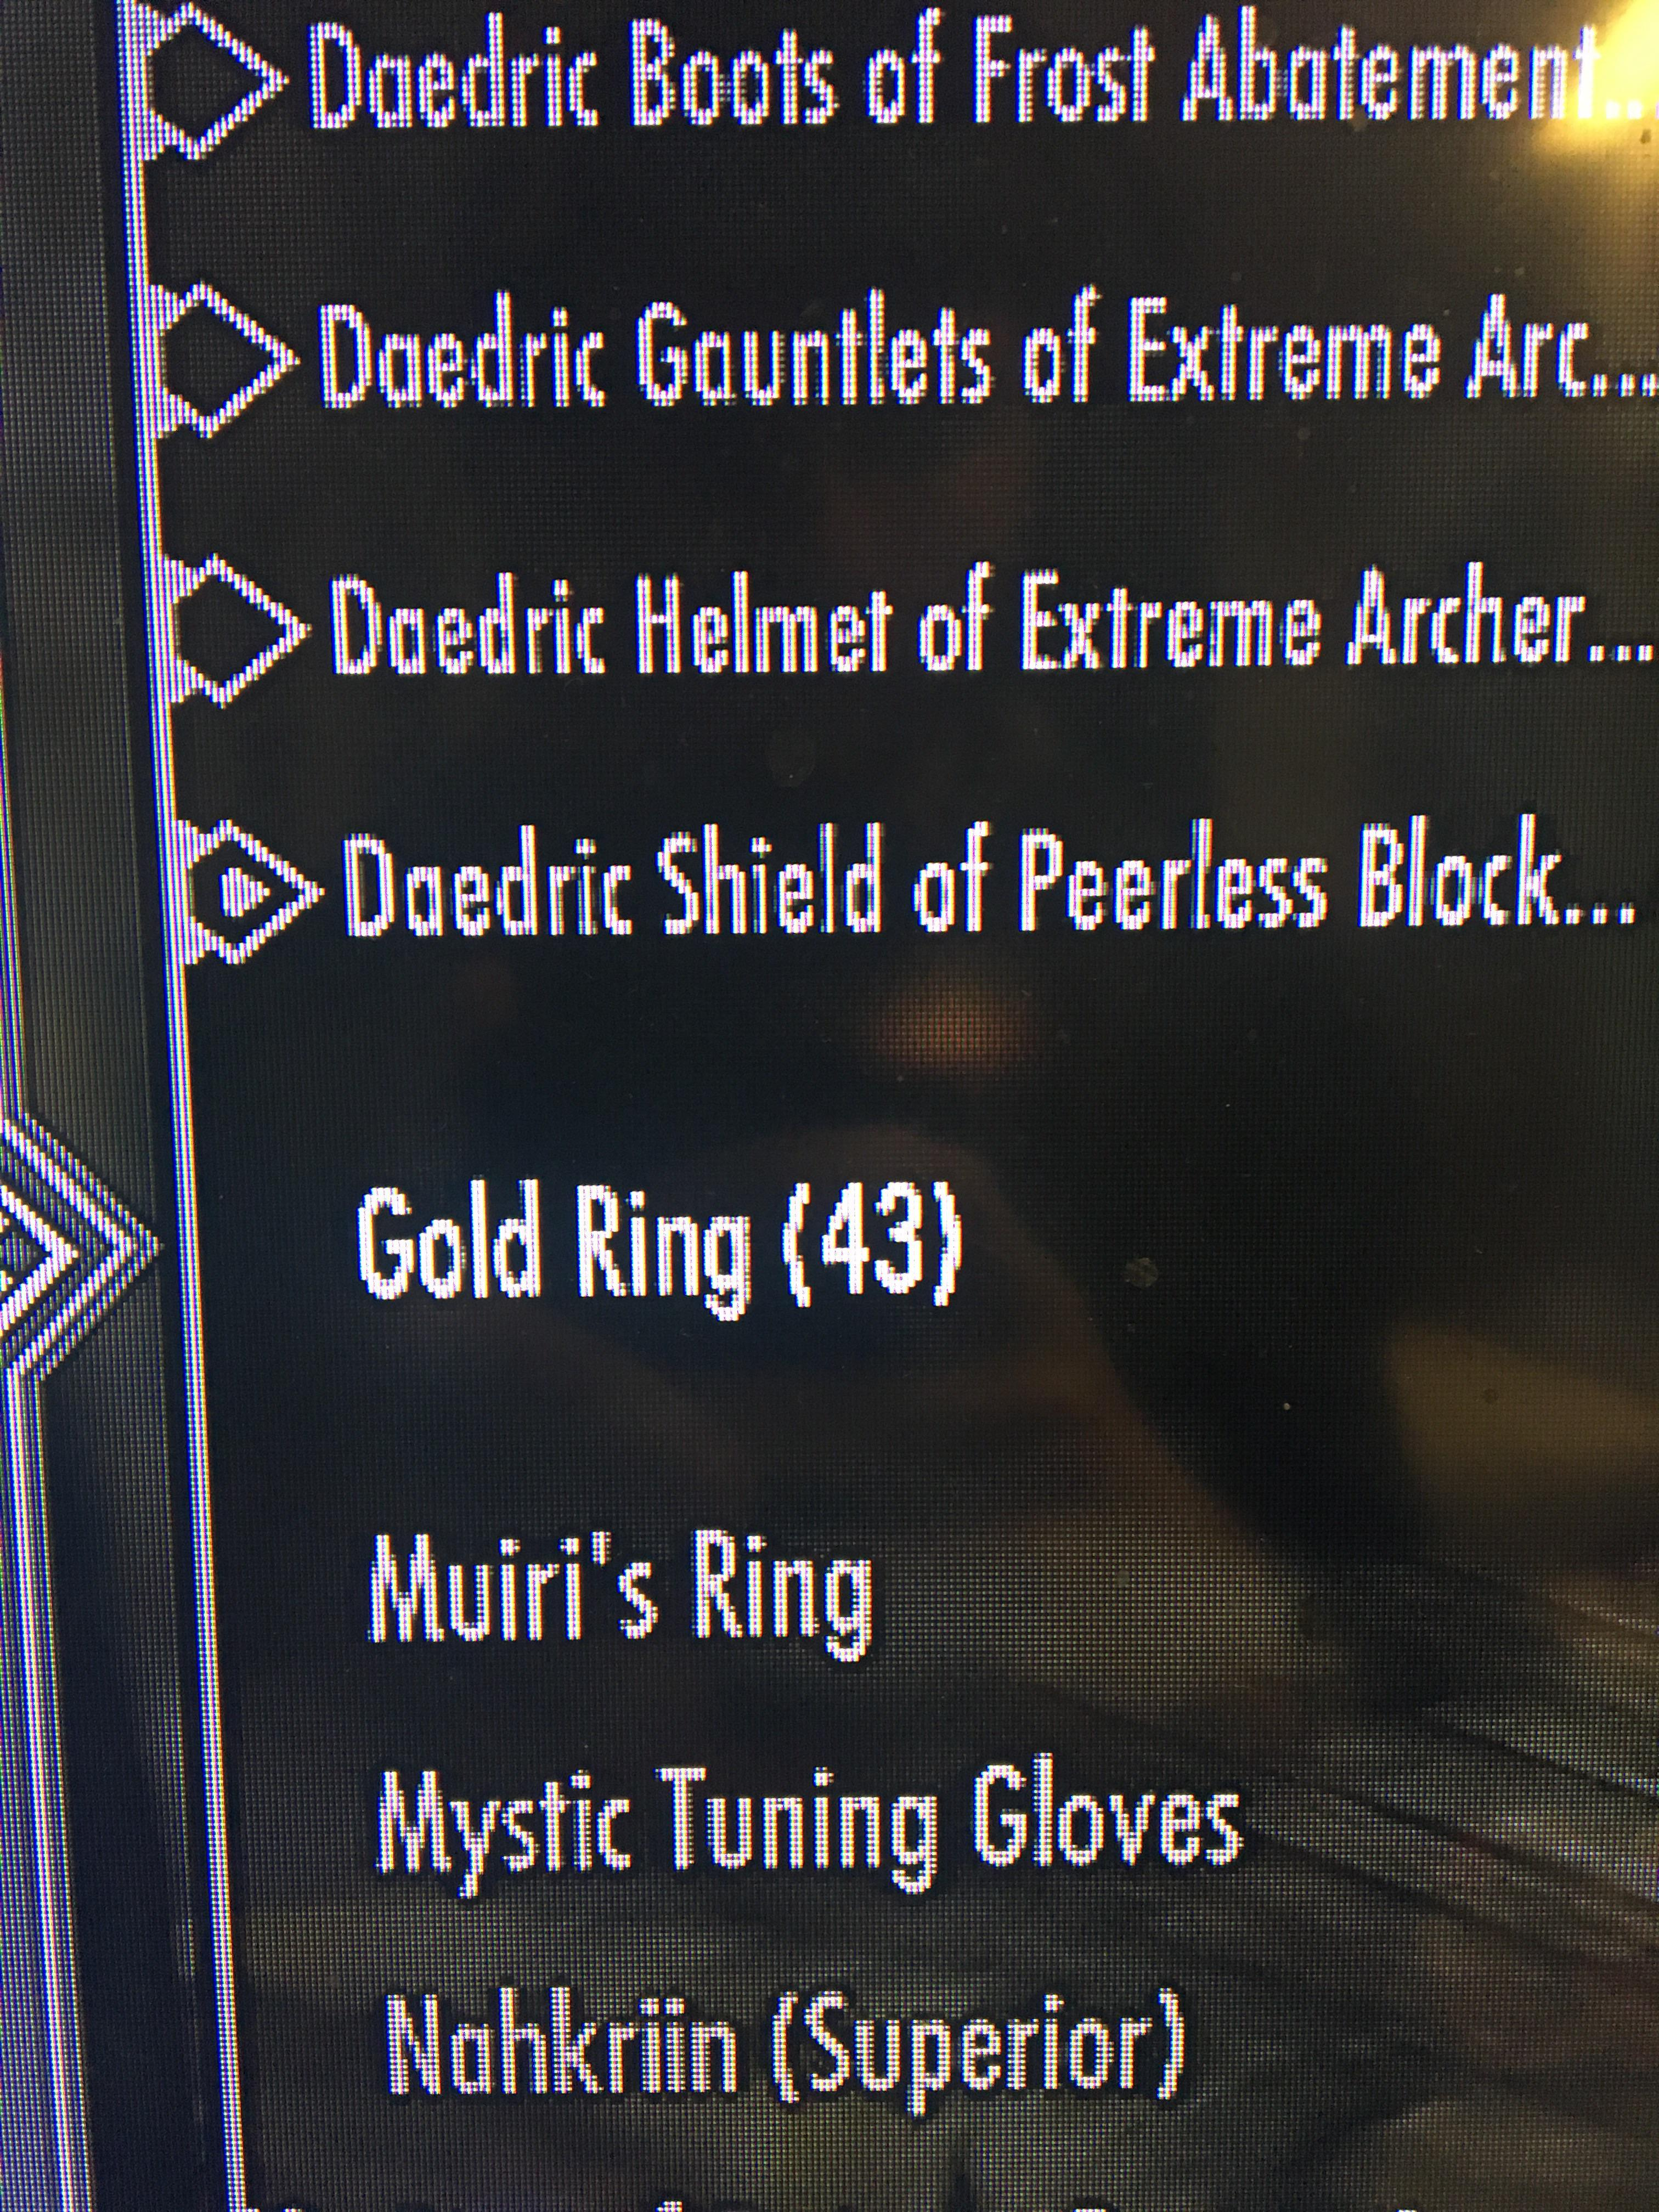 Where To Sell Jewelry In Skyrim : where, jewelry, skyrim, Forgetting, Rings...., Skyrim